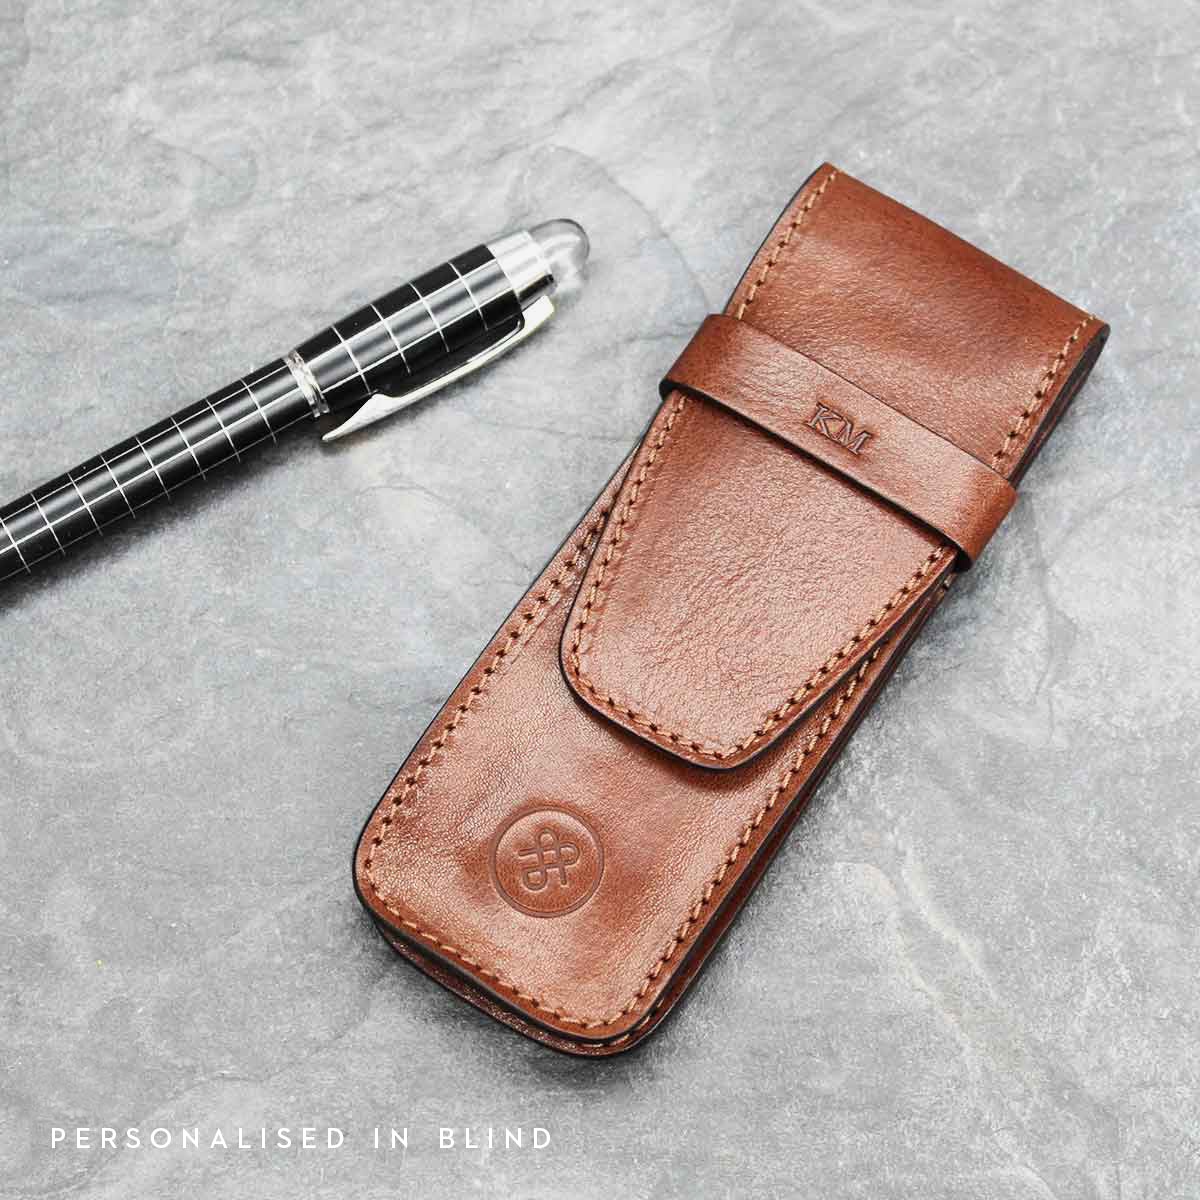 Image 8 of the 'Pienza' Dark Chocolate Veg-Tanned Leather Pen Case